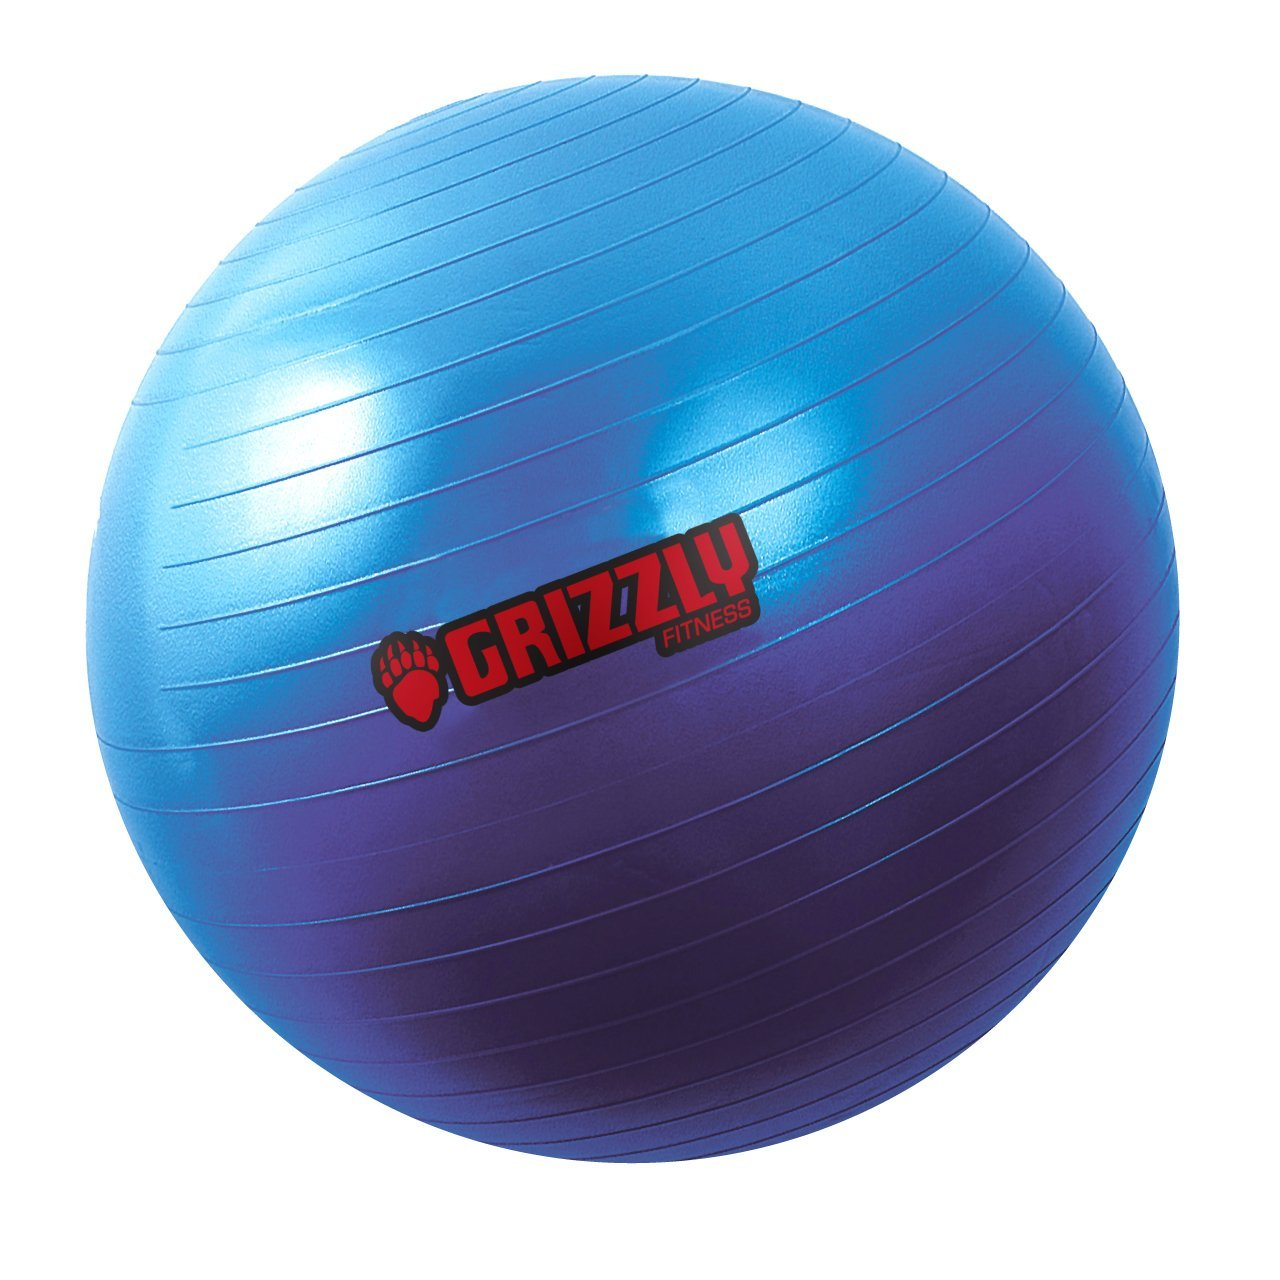 Grizzly Fitness 75cm Anti Burst Training Ball (Pump Included)